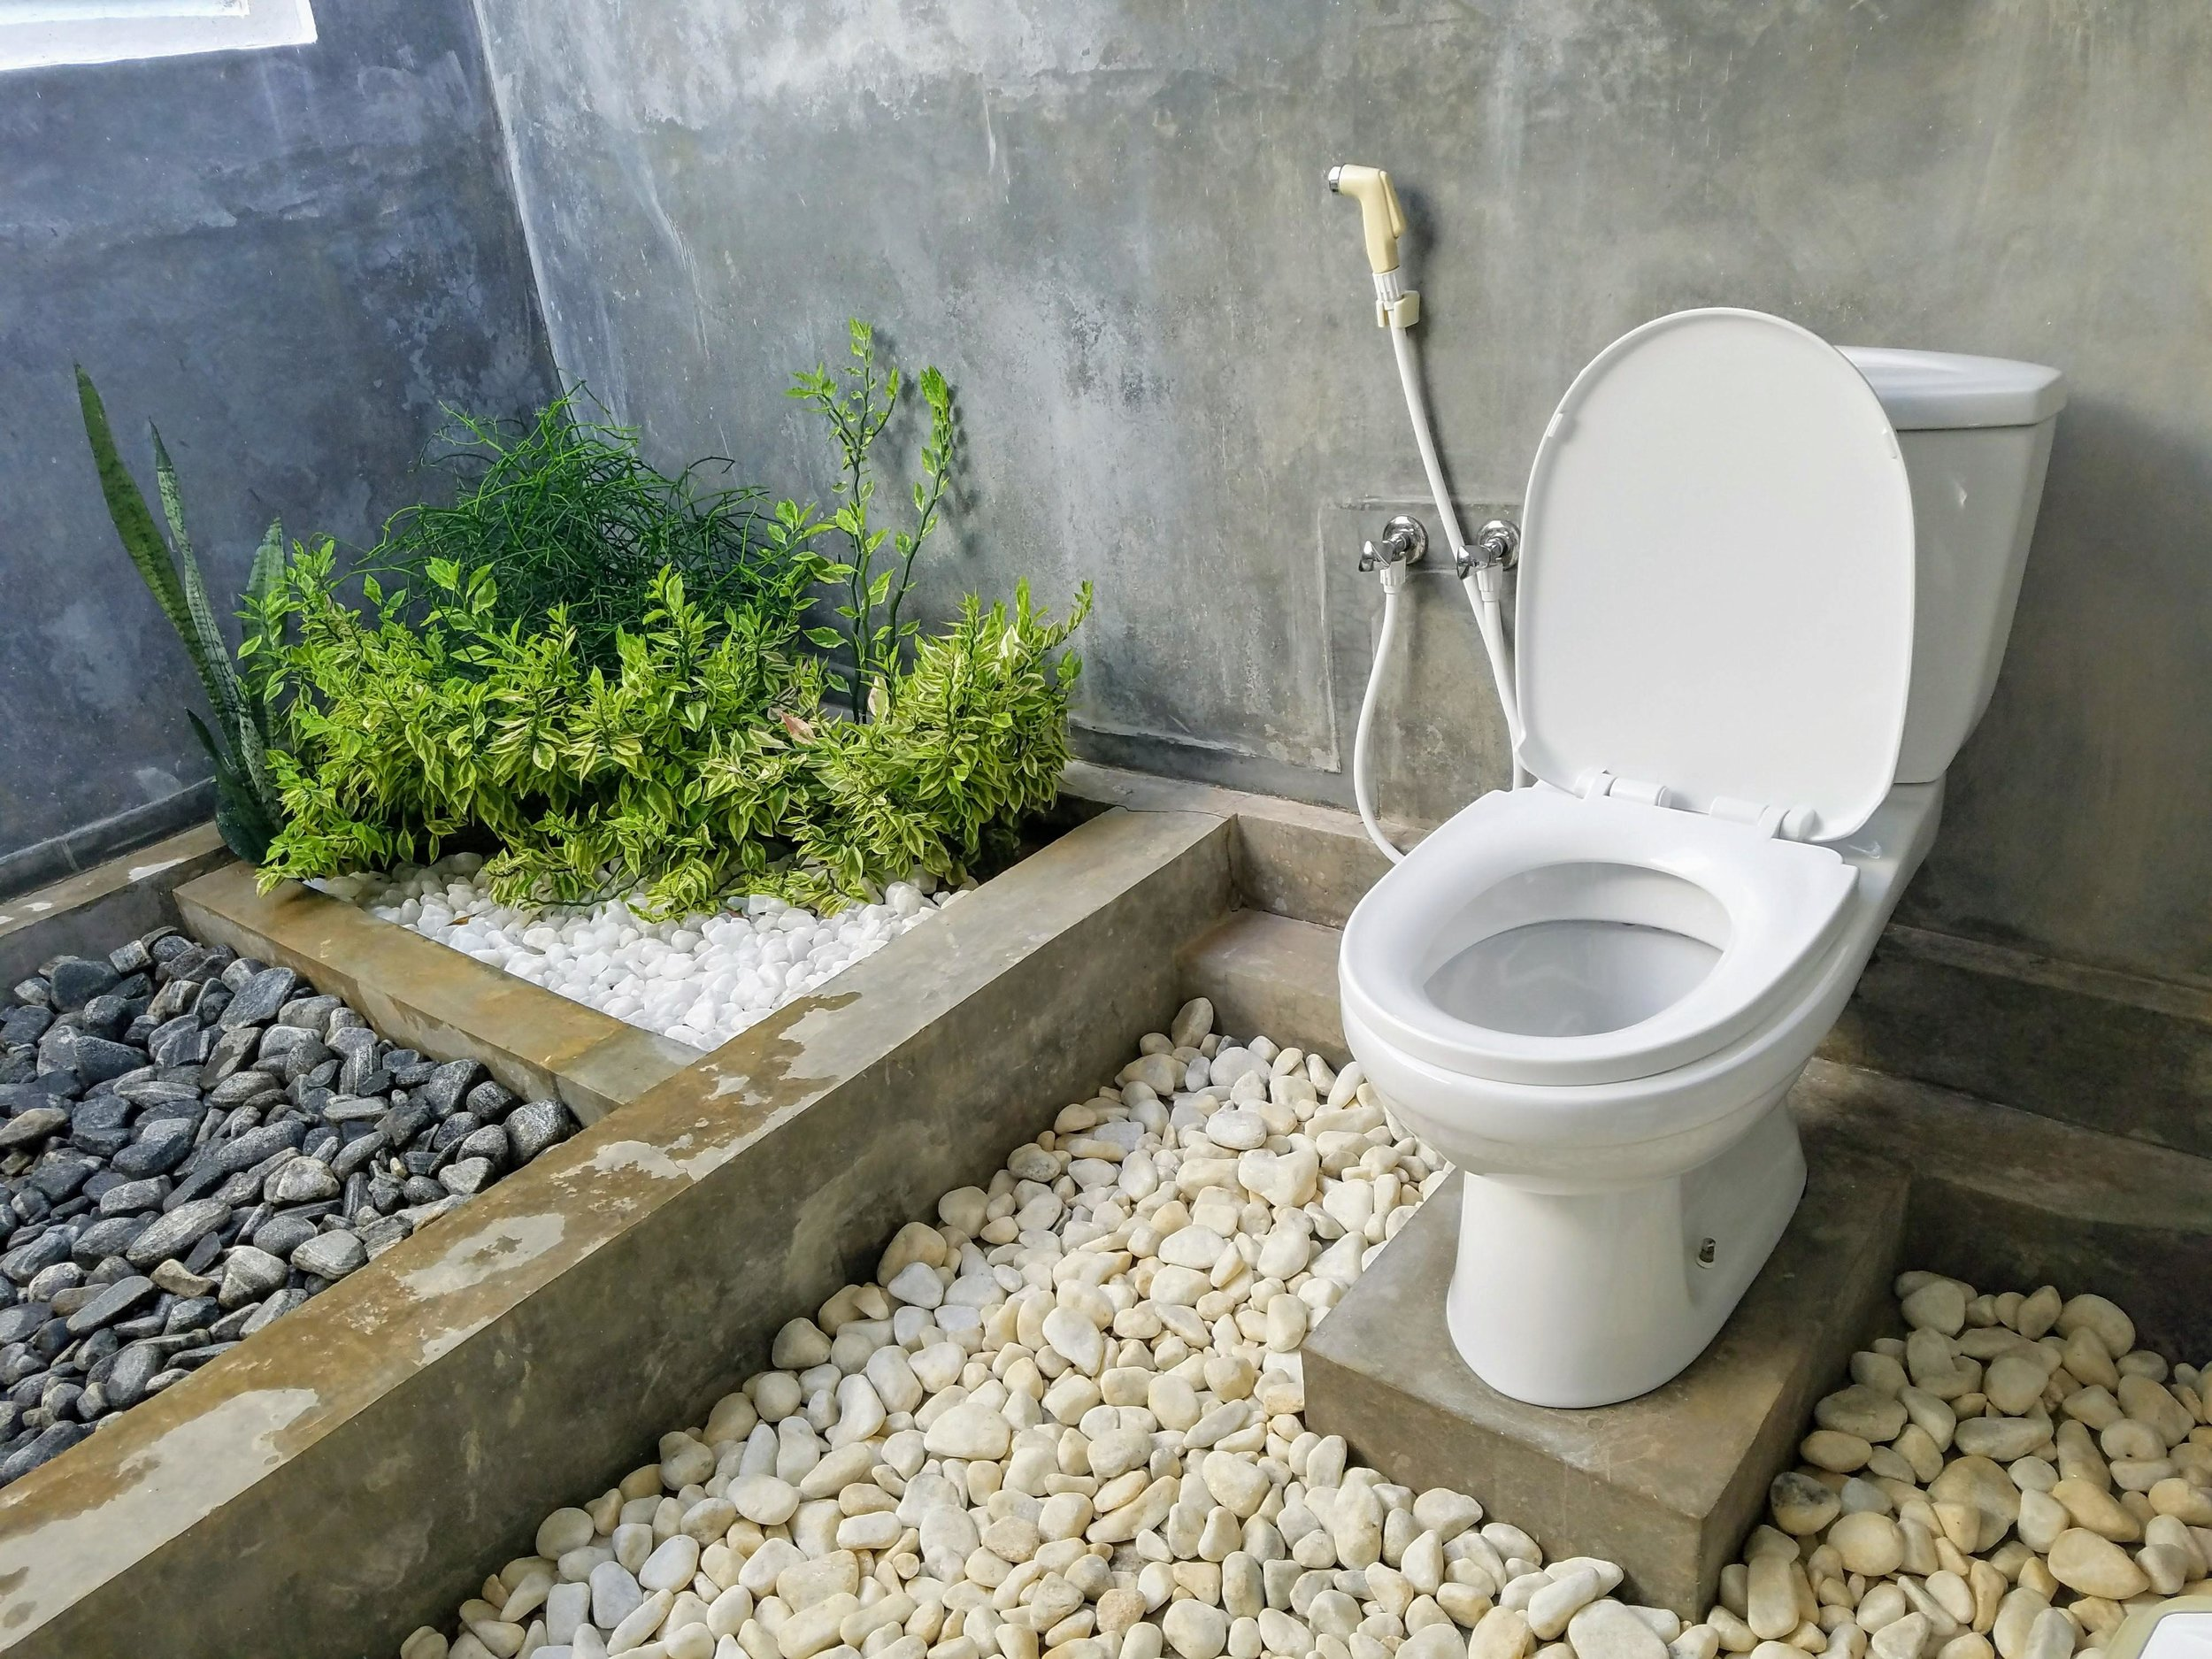 Seated flush toilet with a hose in Sri Lanka